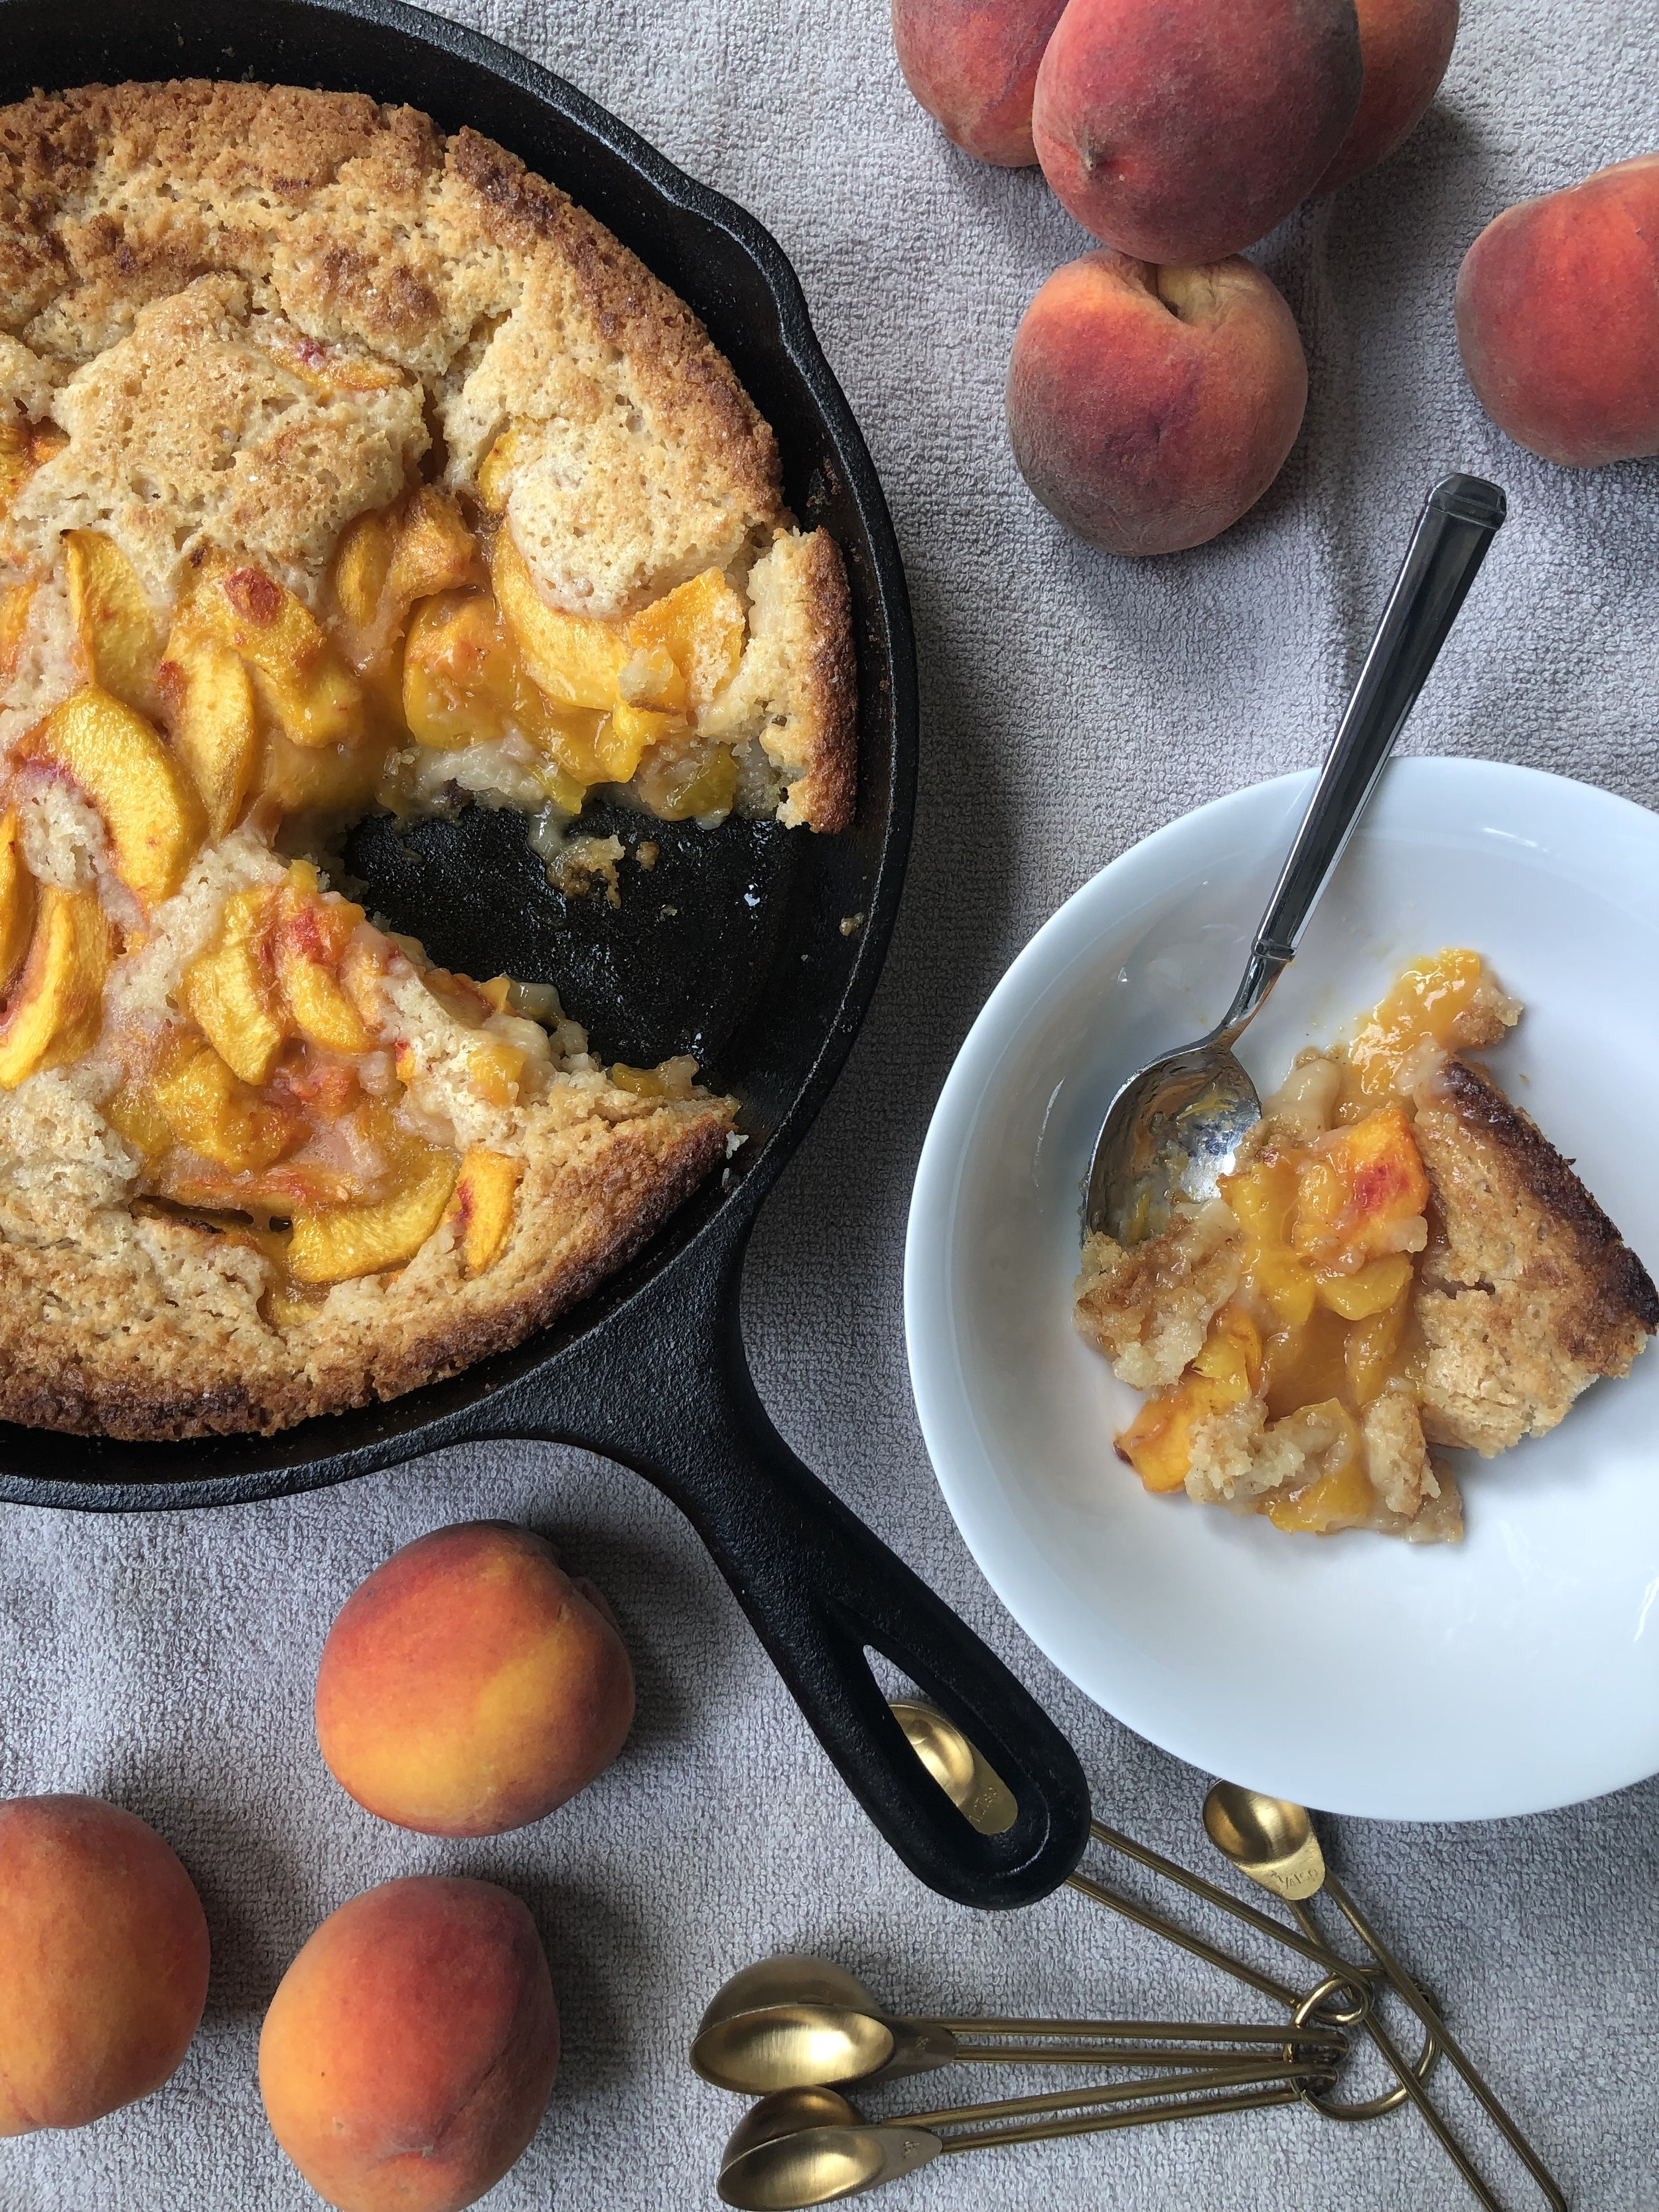 the peach truck 's peach and blueberry cobbler recipe without blueberries cause no